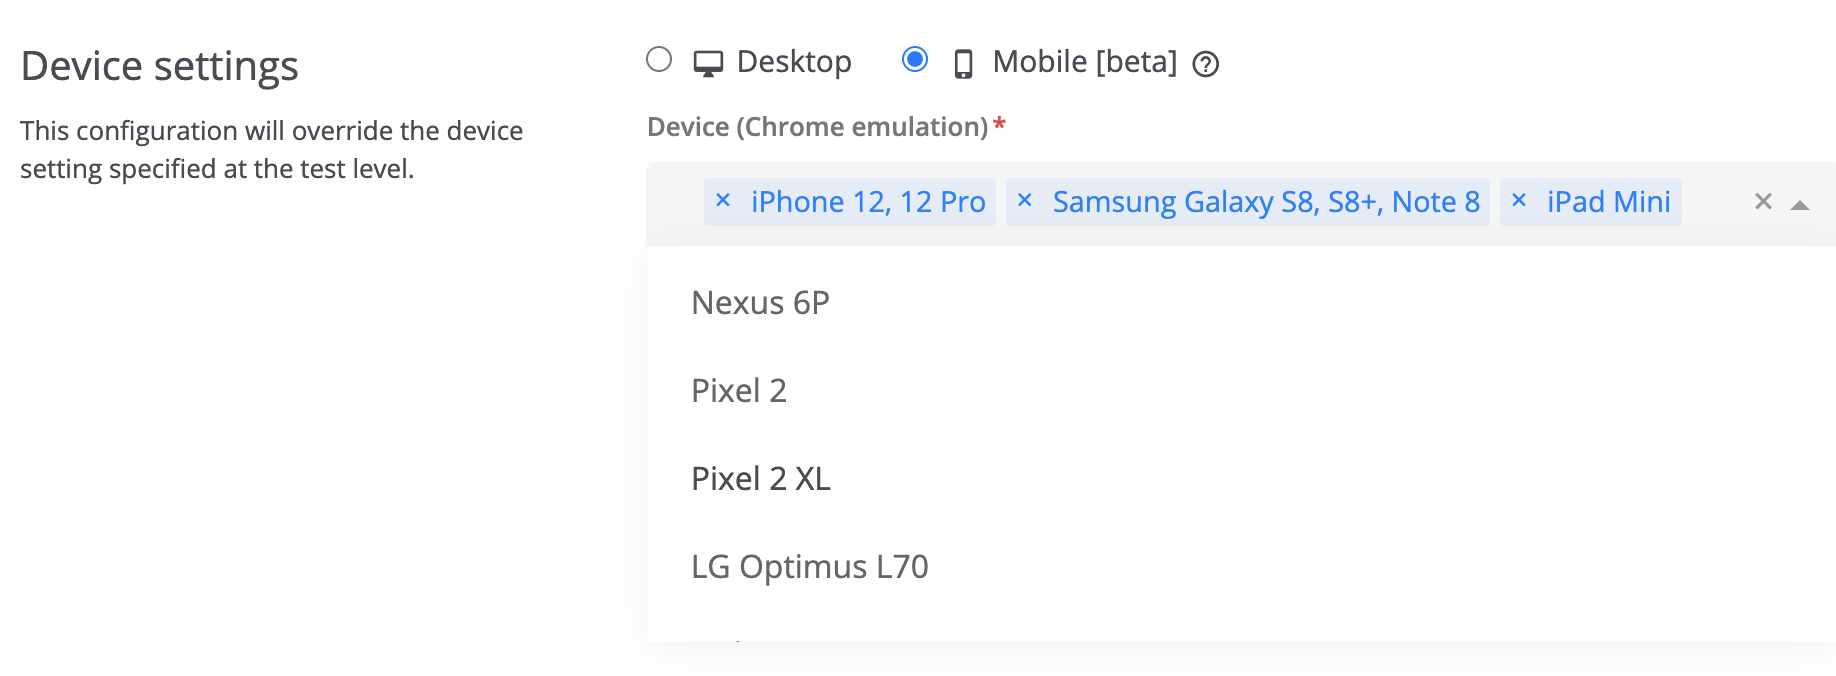 Selecting mobile devices to emulate when running tests in Chrome.